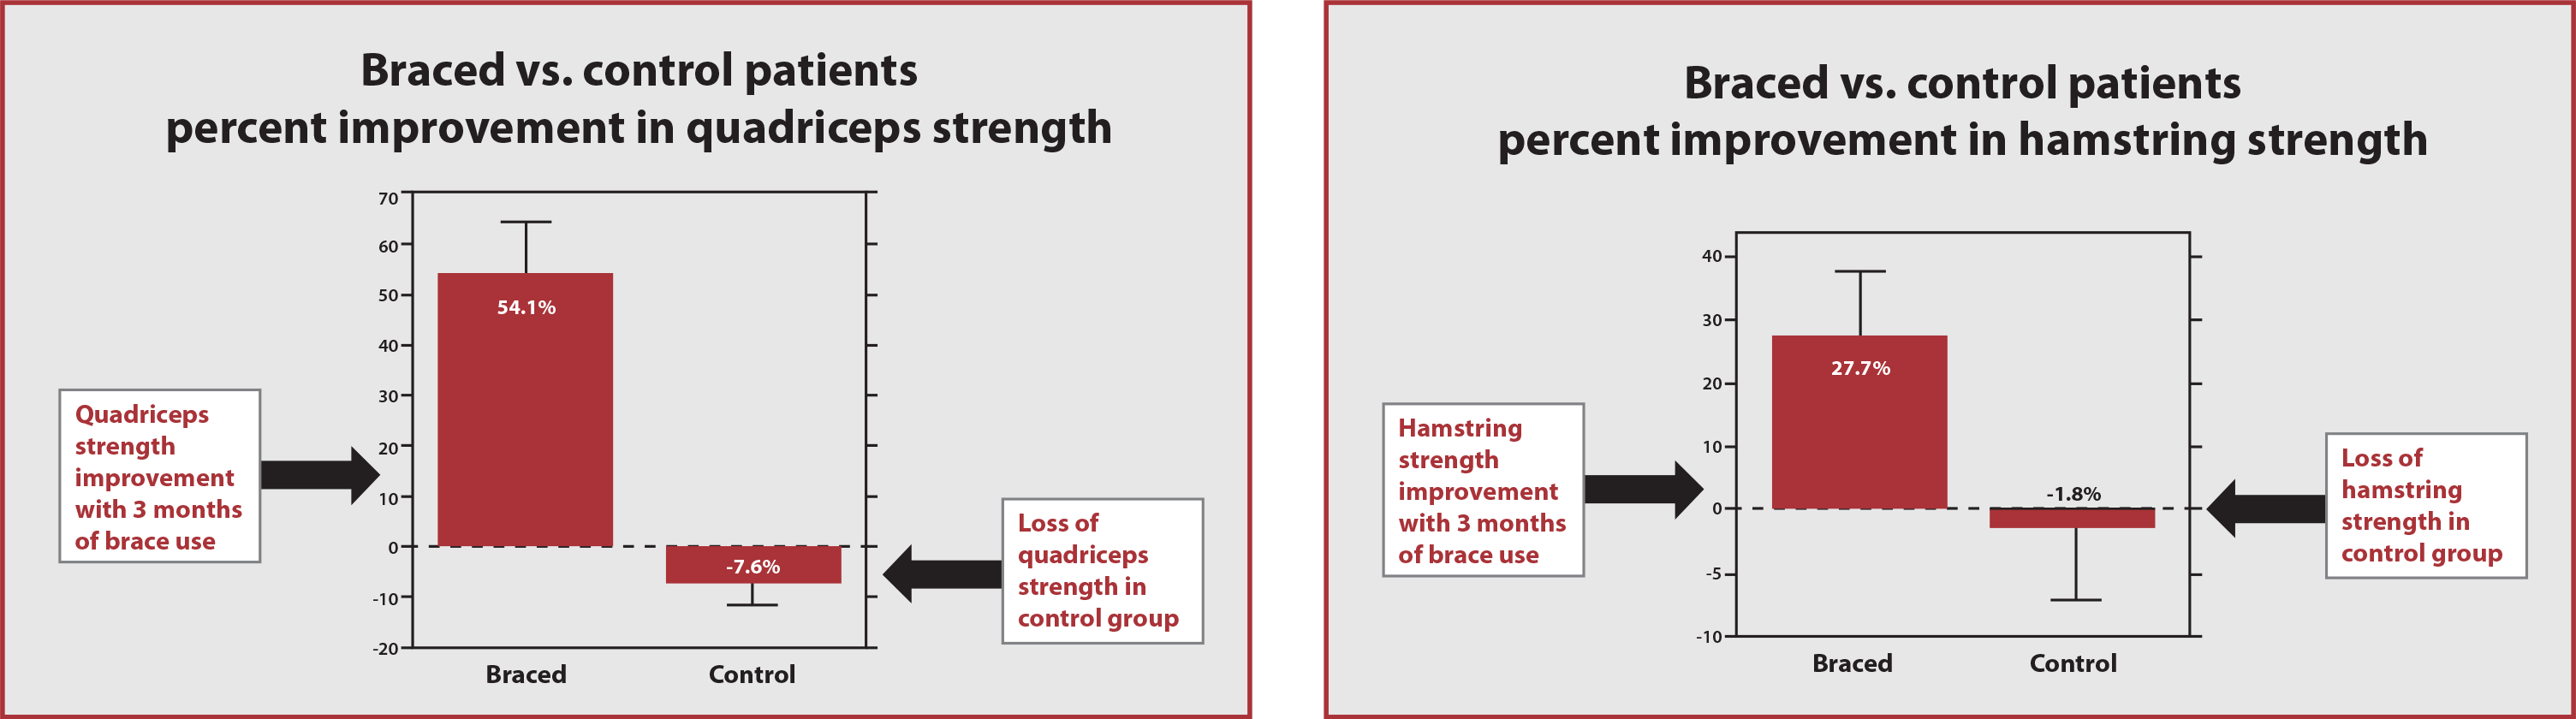 Braced vs. Control Patients